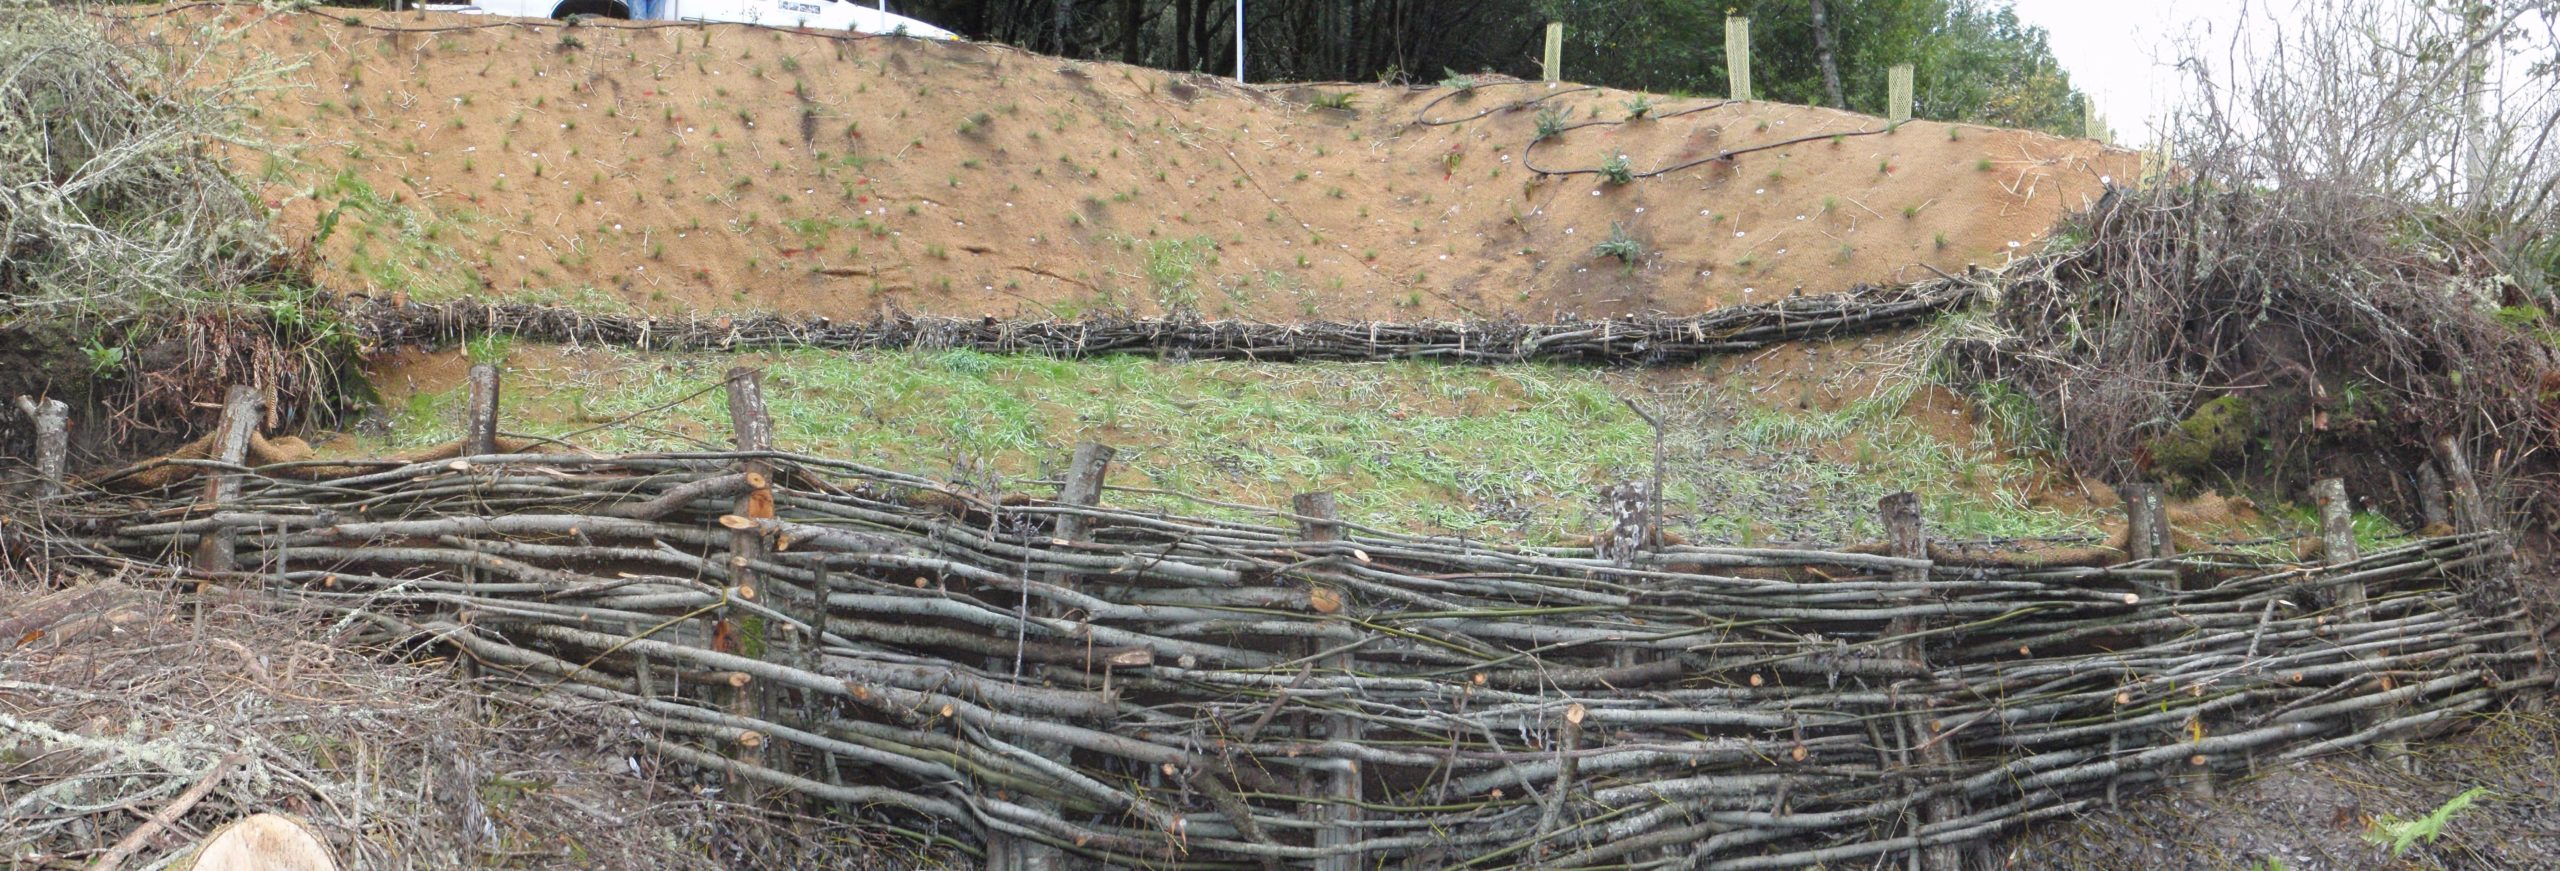 This panoramic image shows a bank which has been stabilized with a willow wall, constructed out of vertical willow stakes woven with horizontal smaller branches and twigs.